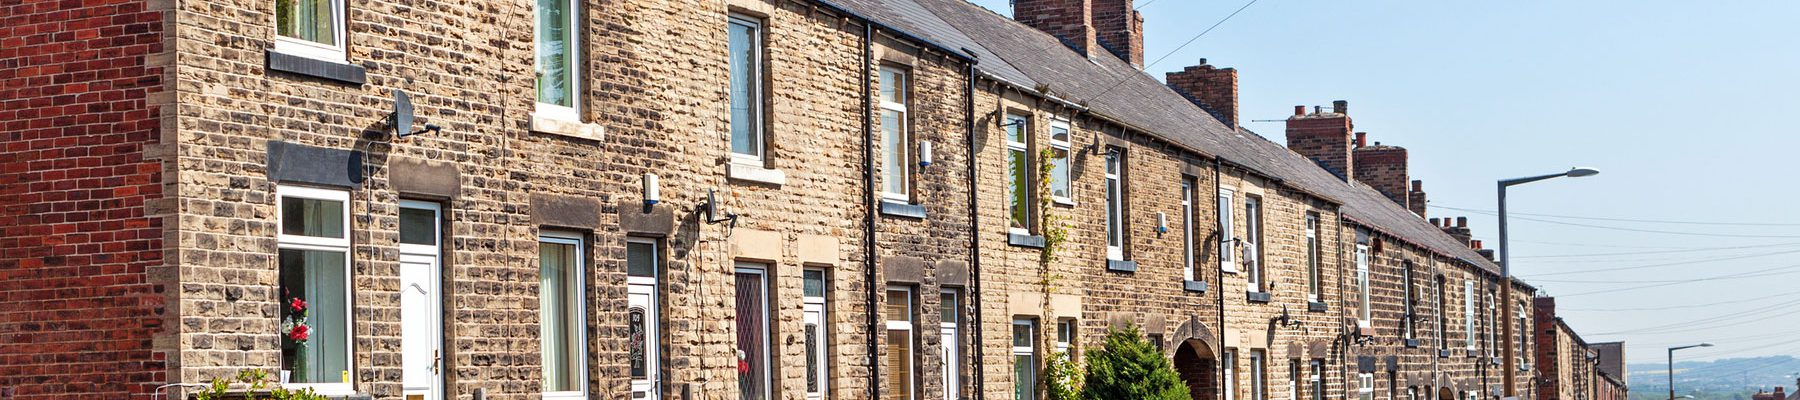 Typical Terraced Houses England